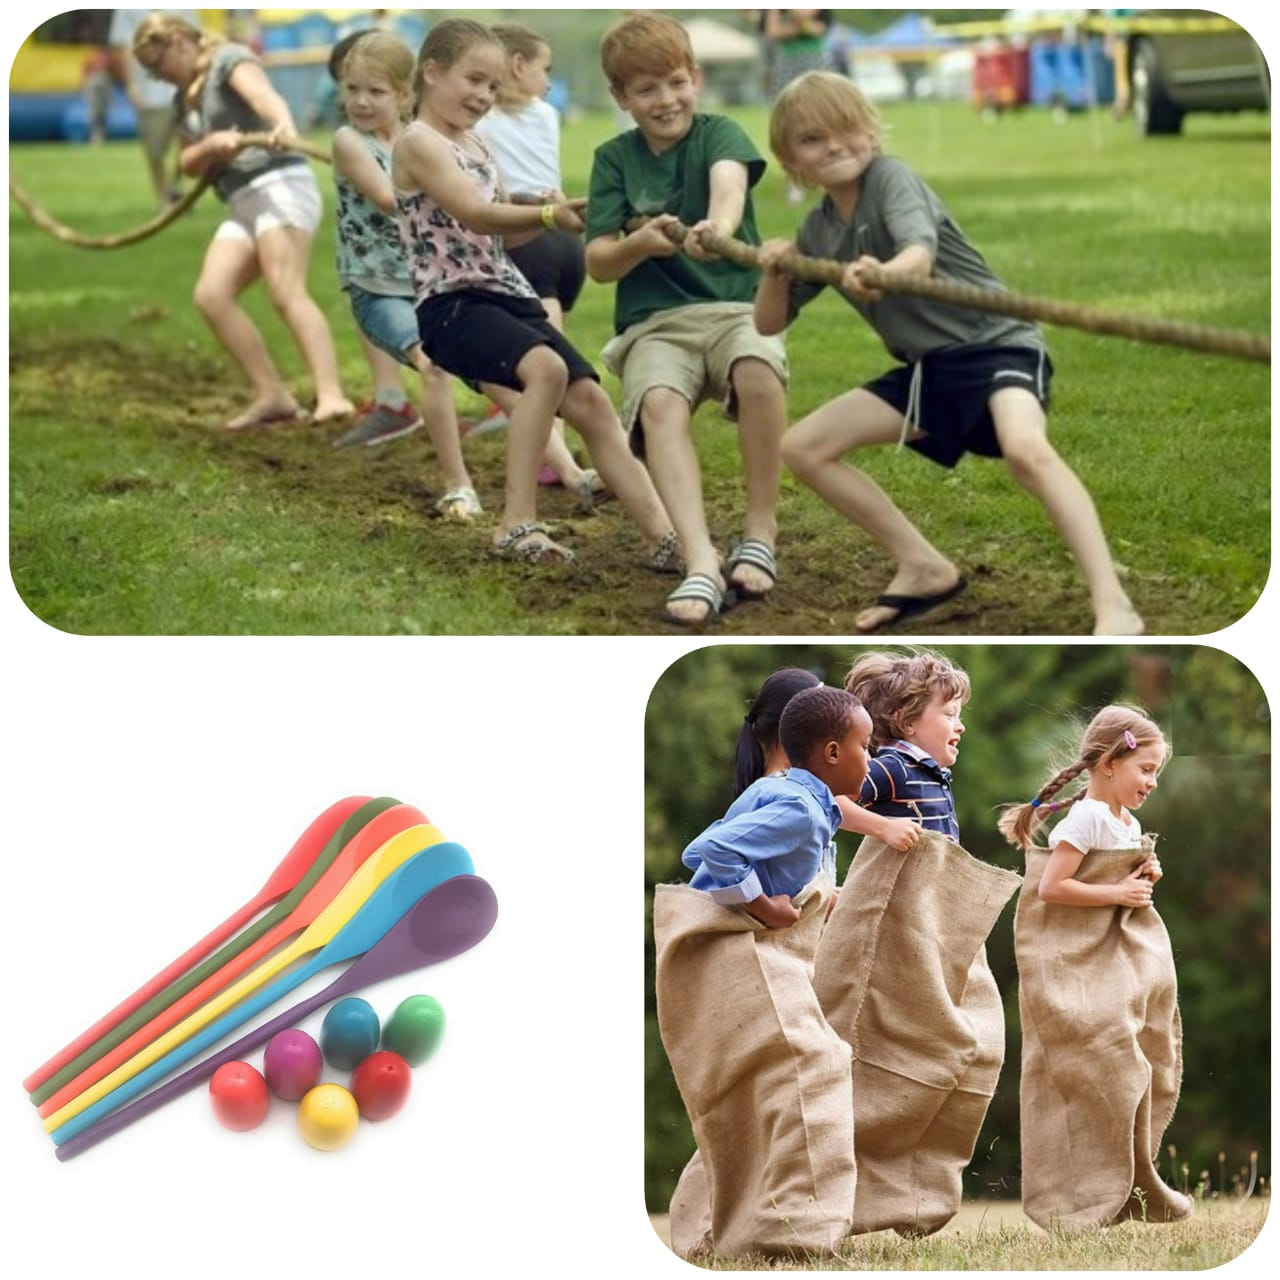 Brithday Party Activities, Tug Of War, Egg & Spoon & Sack